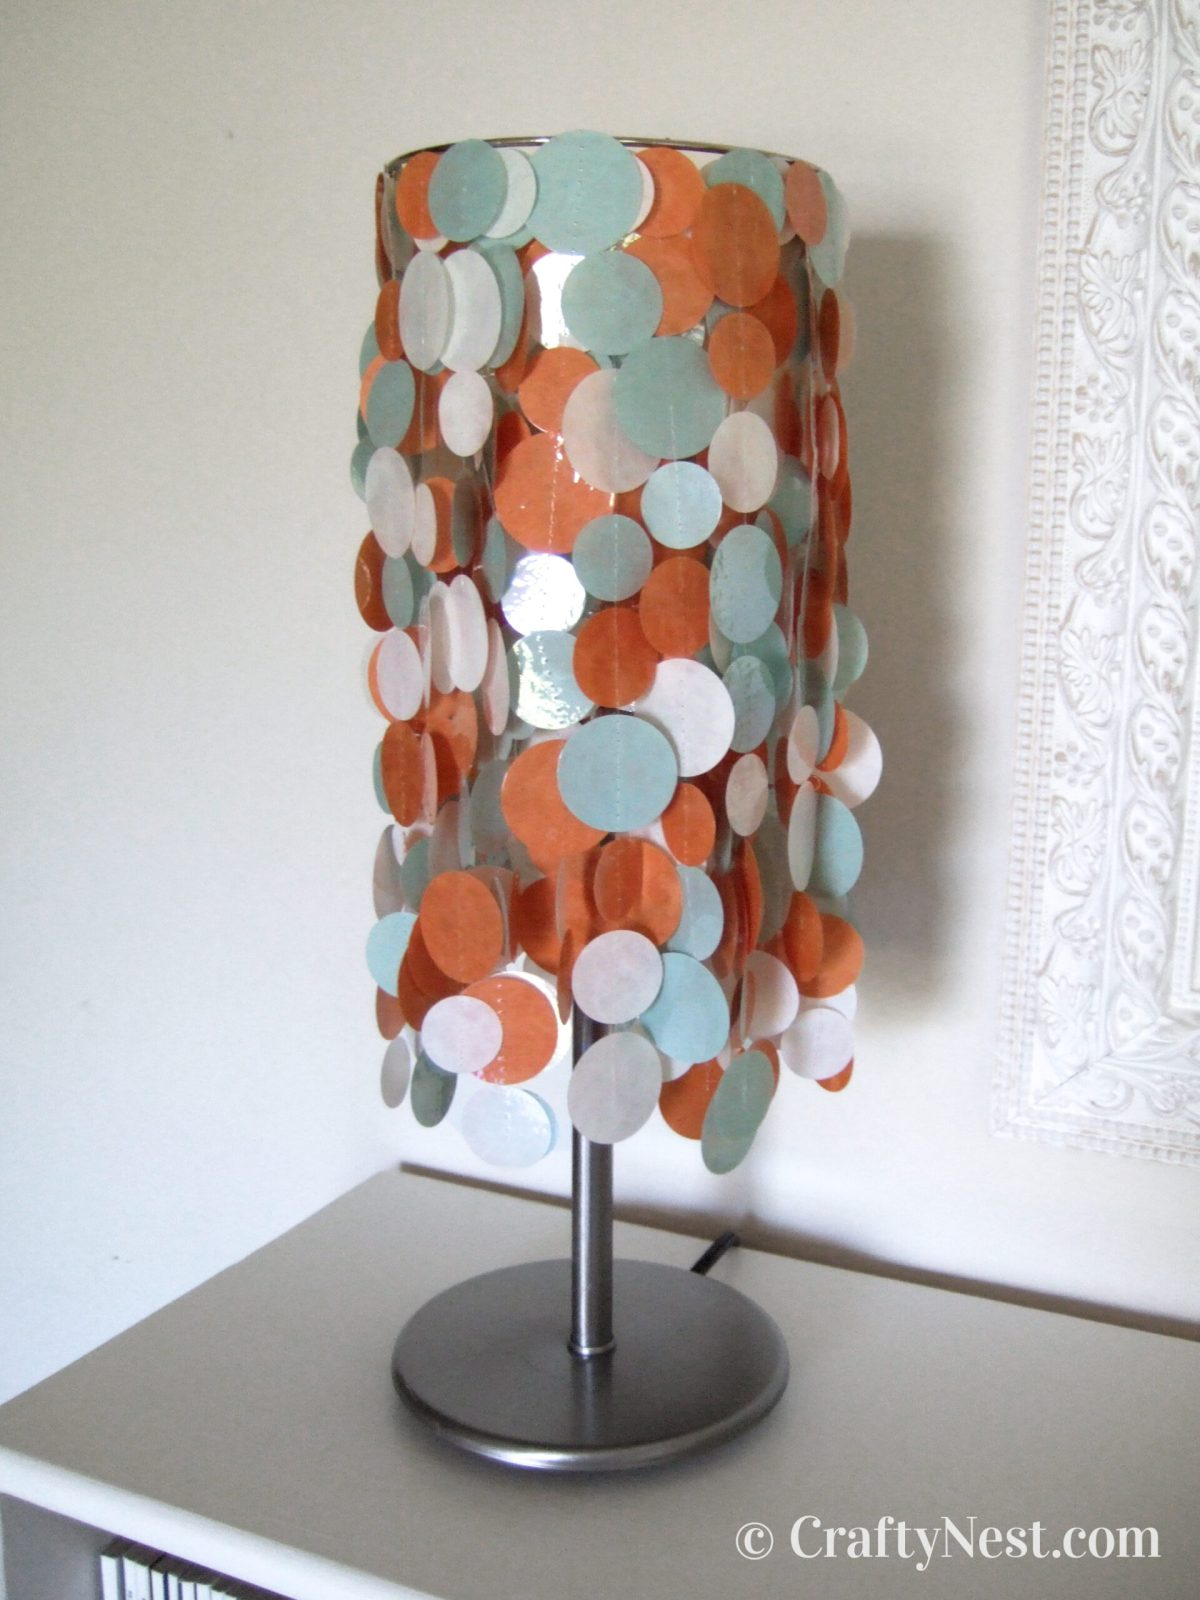 Colorful, funky lampshade with light off, photo